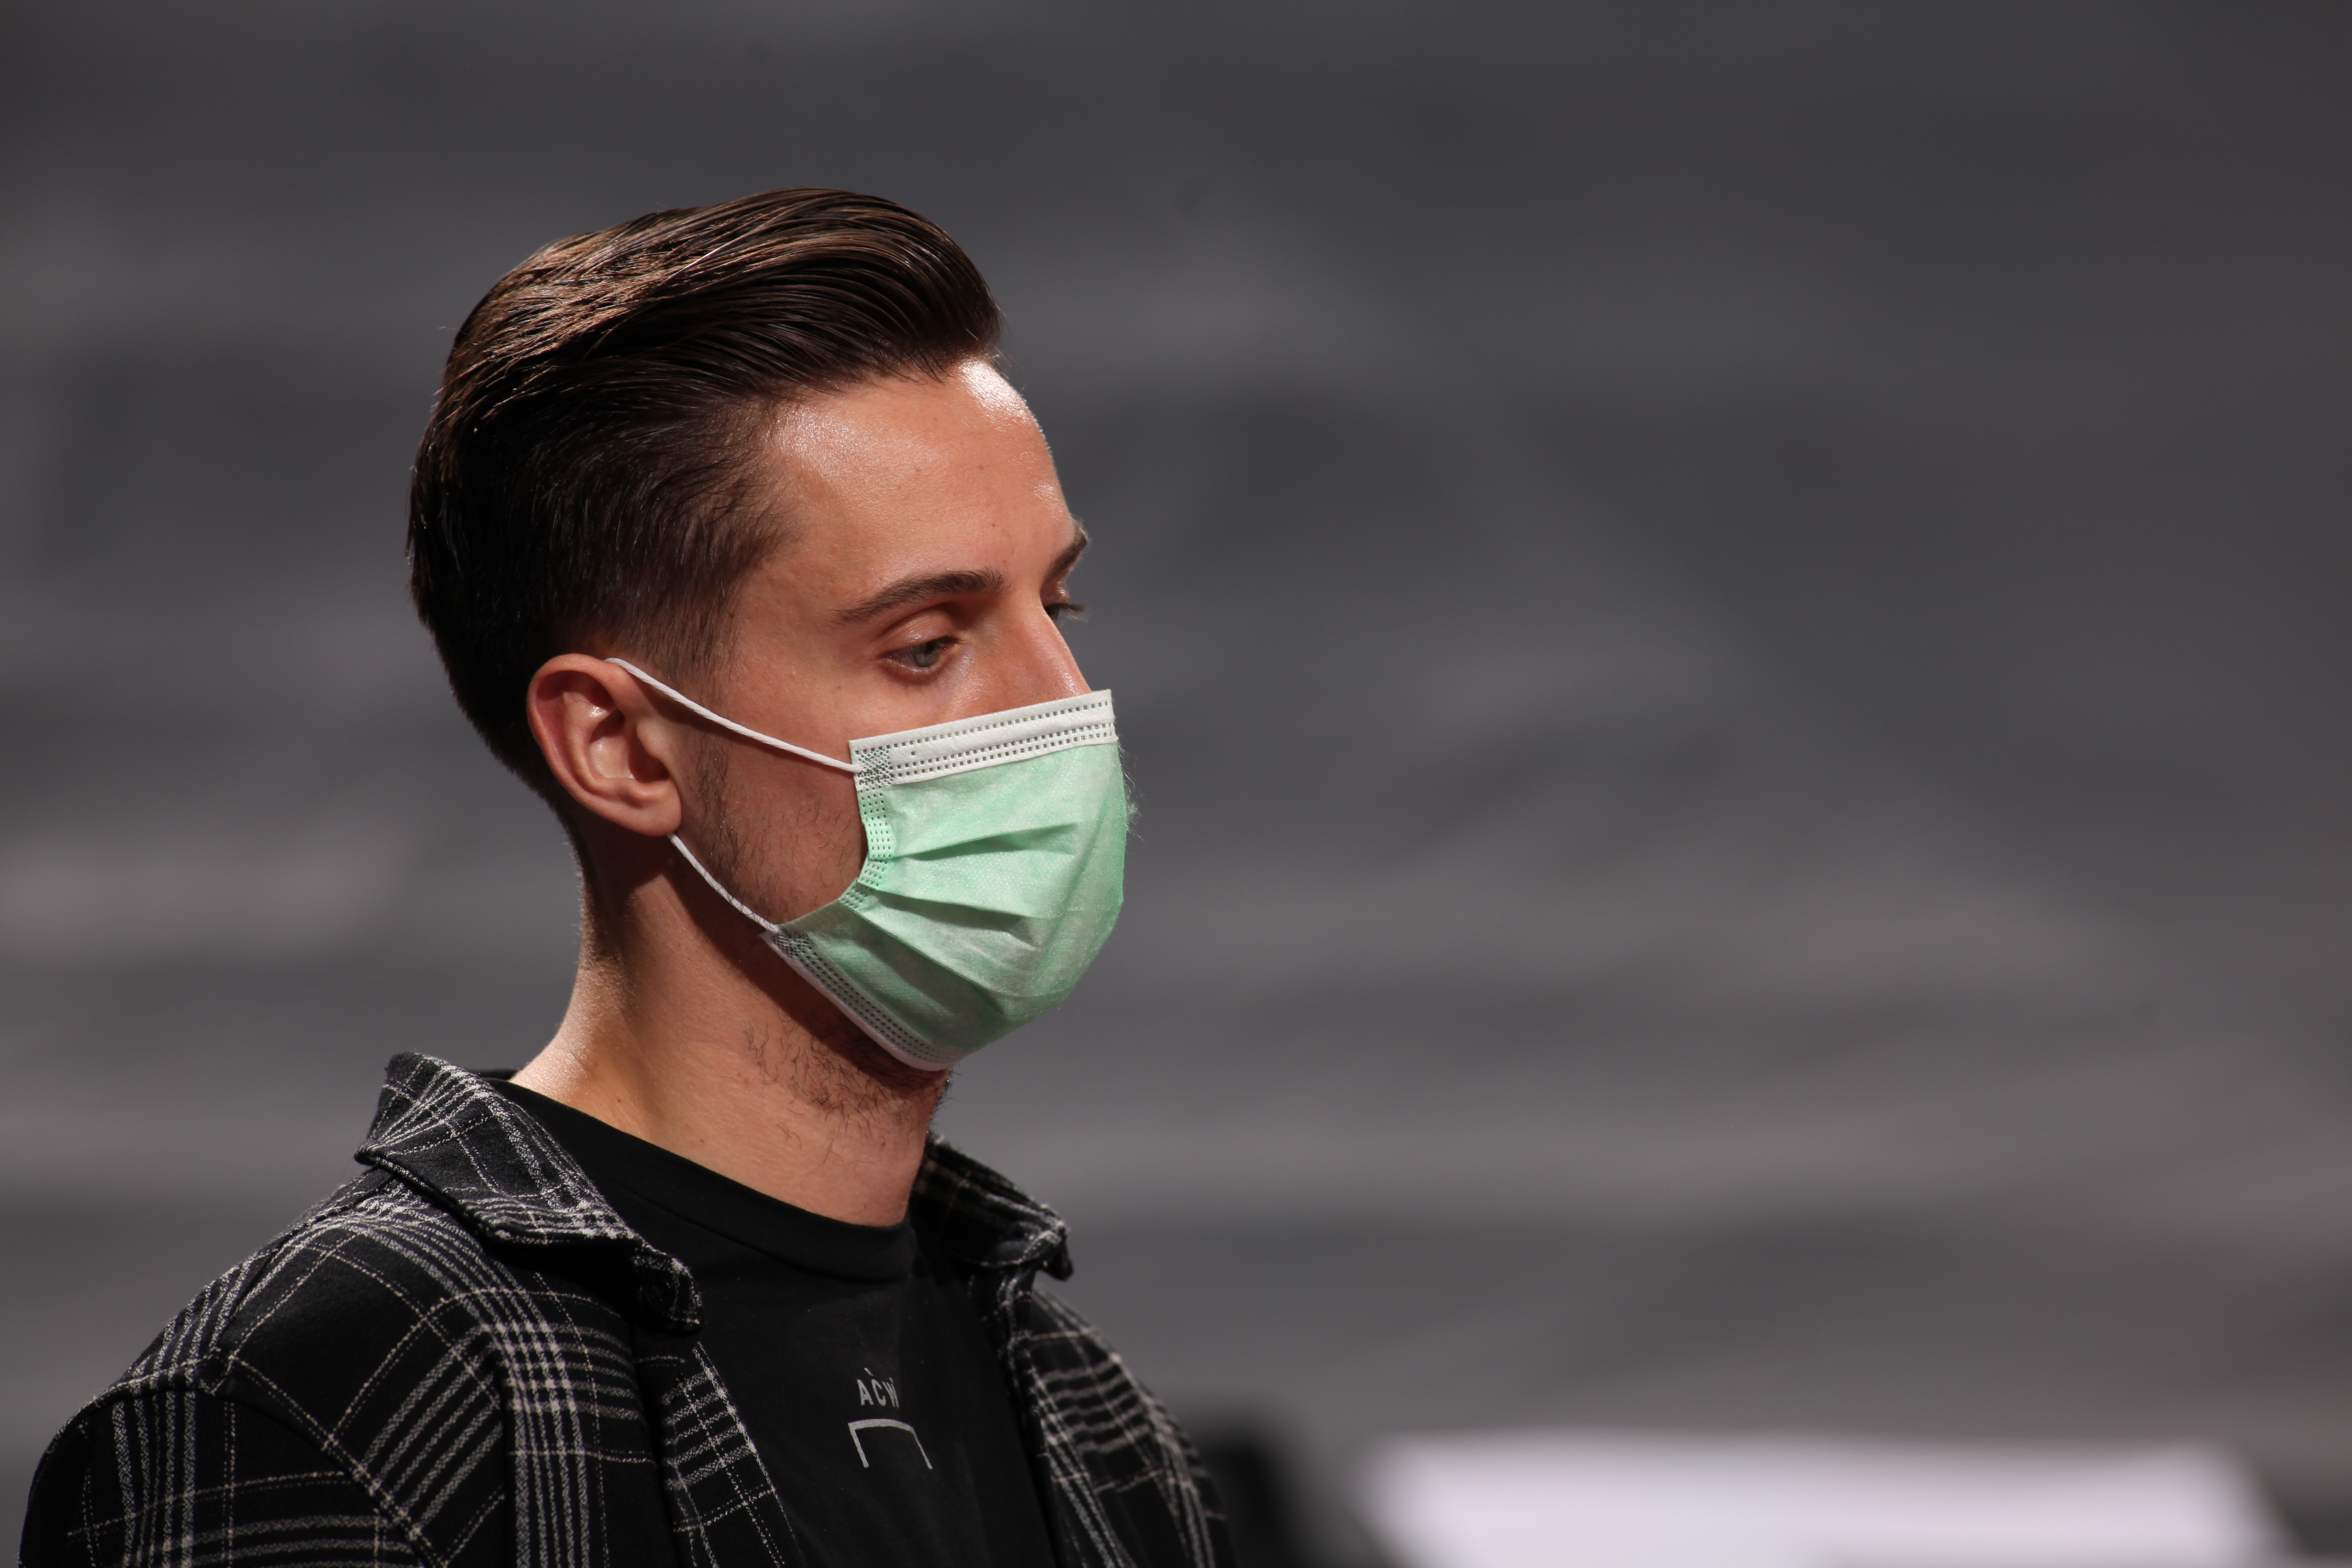 Zach Collins #33 of the Portland Trail Blazers looks on during the game against the Utah Jazz on December 23, 2020 at the Moda Center Arena in Portland, Oregon.